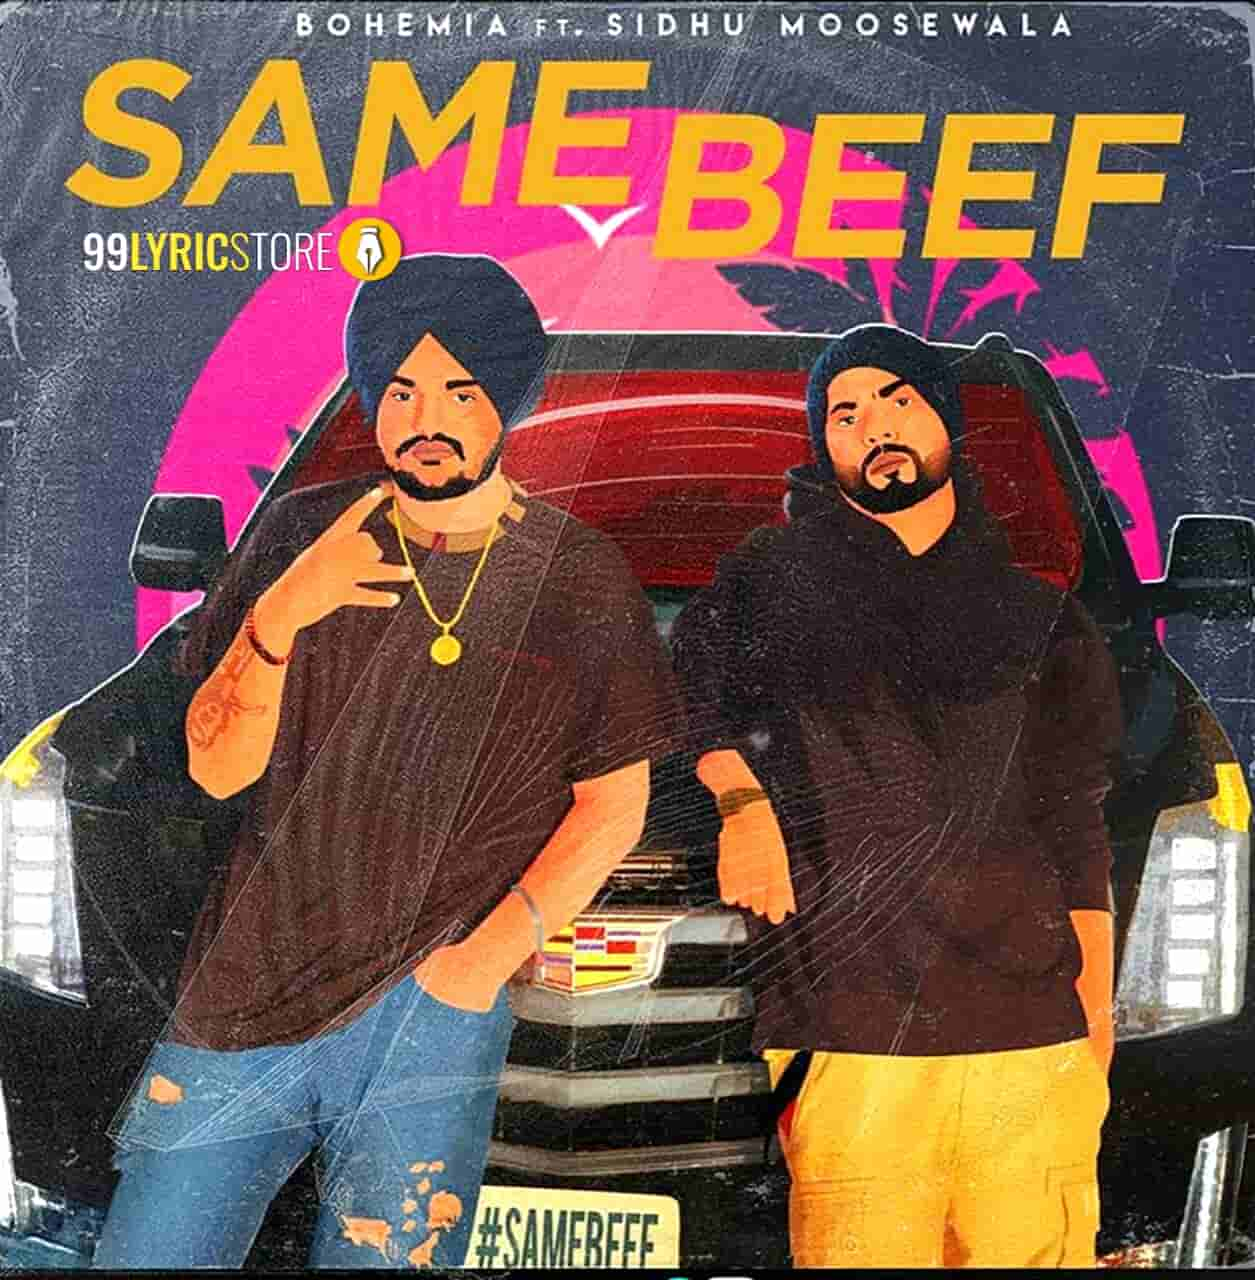 Same Beef Punjabi Song Sung by Sidhu Moose Wala and Bohemia